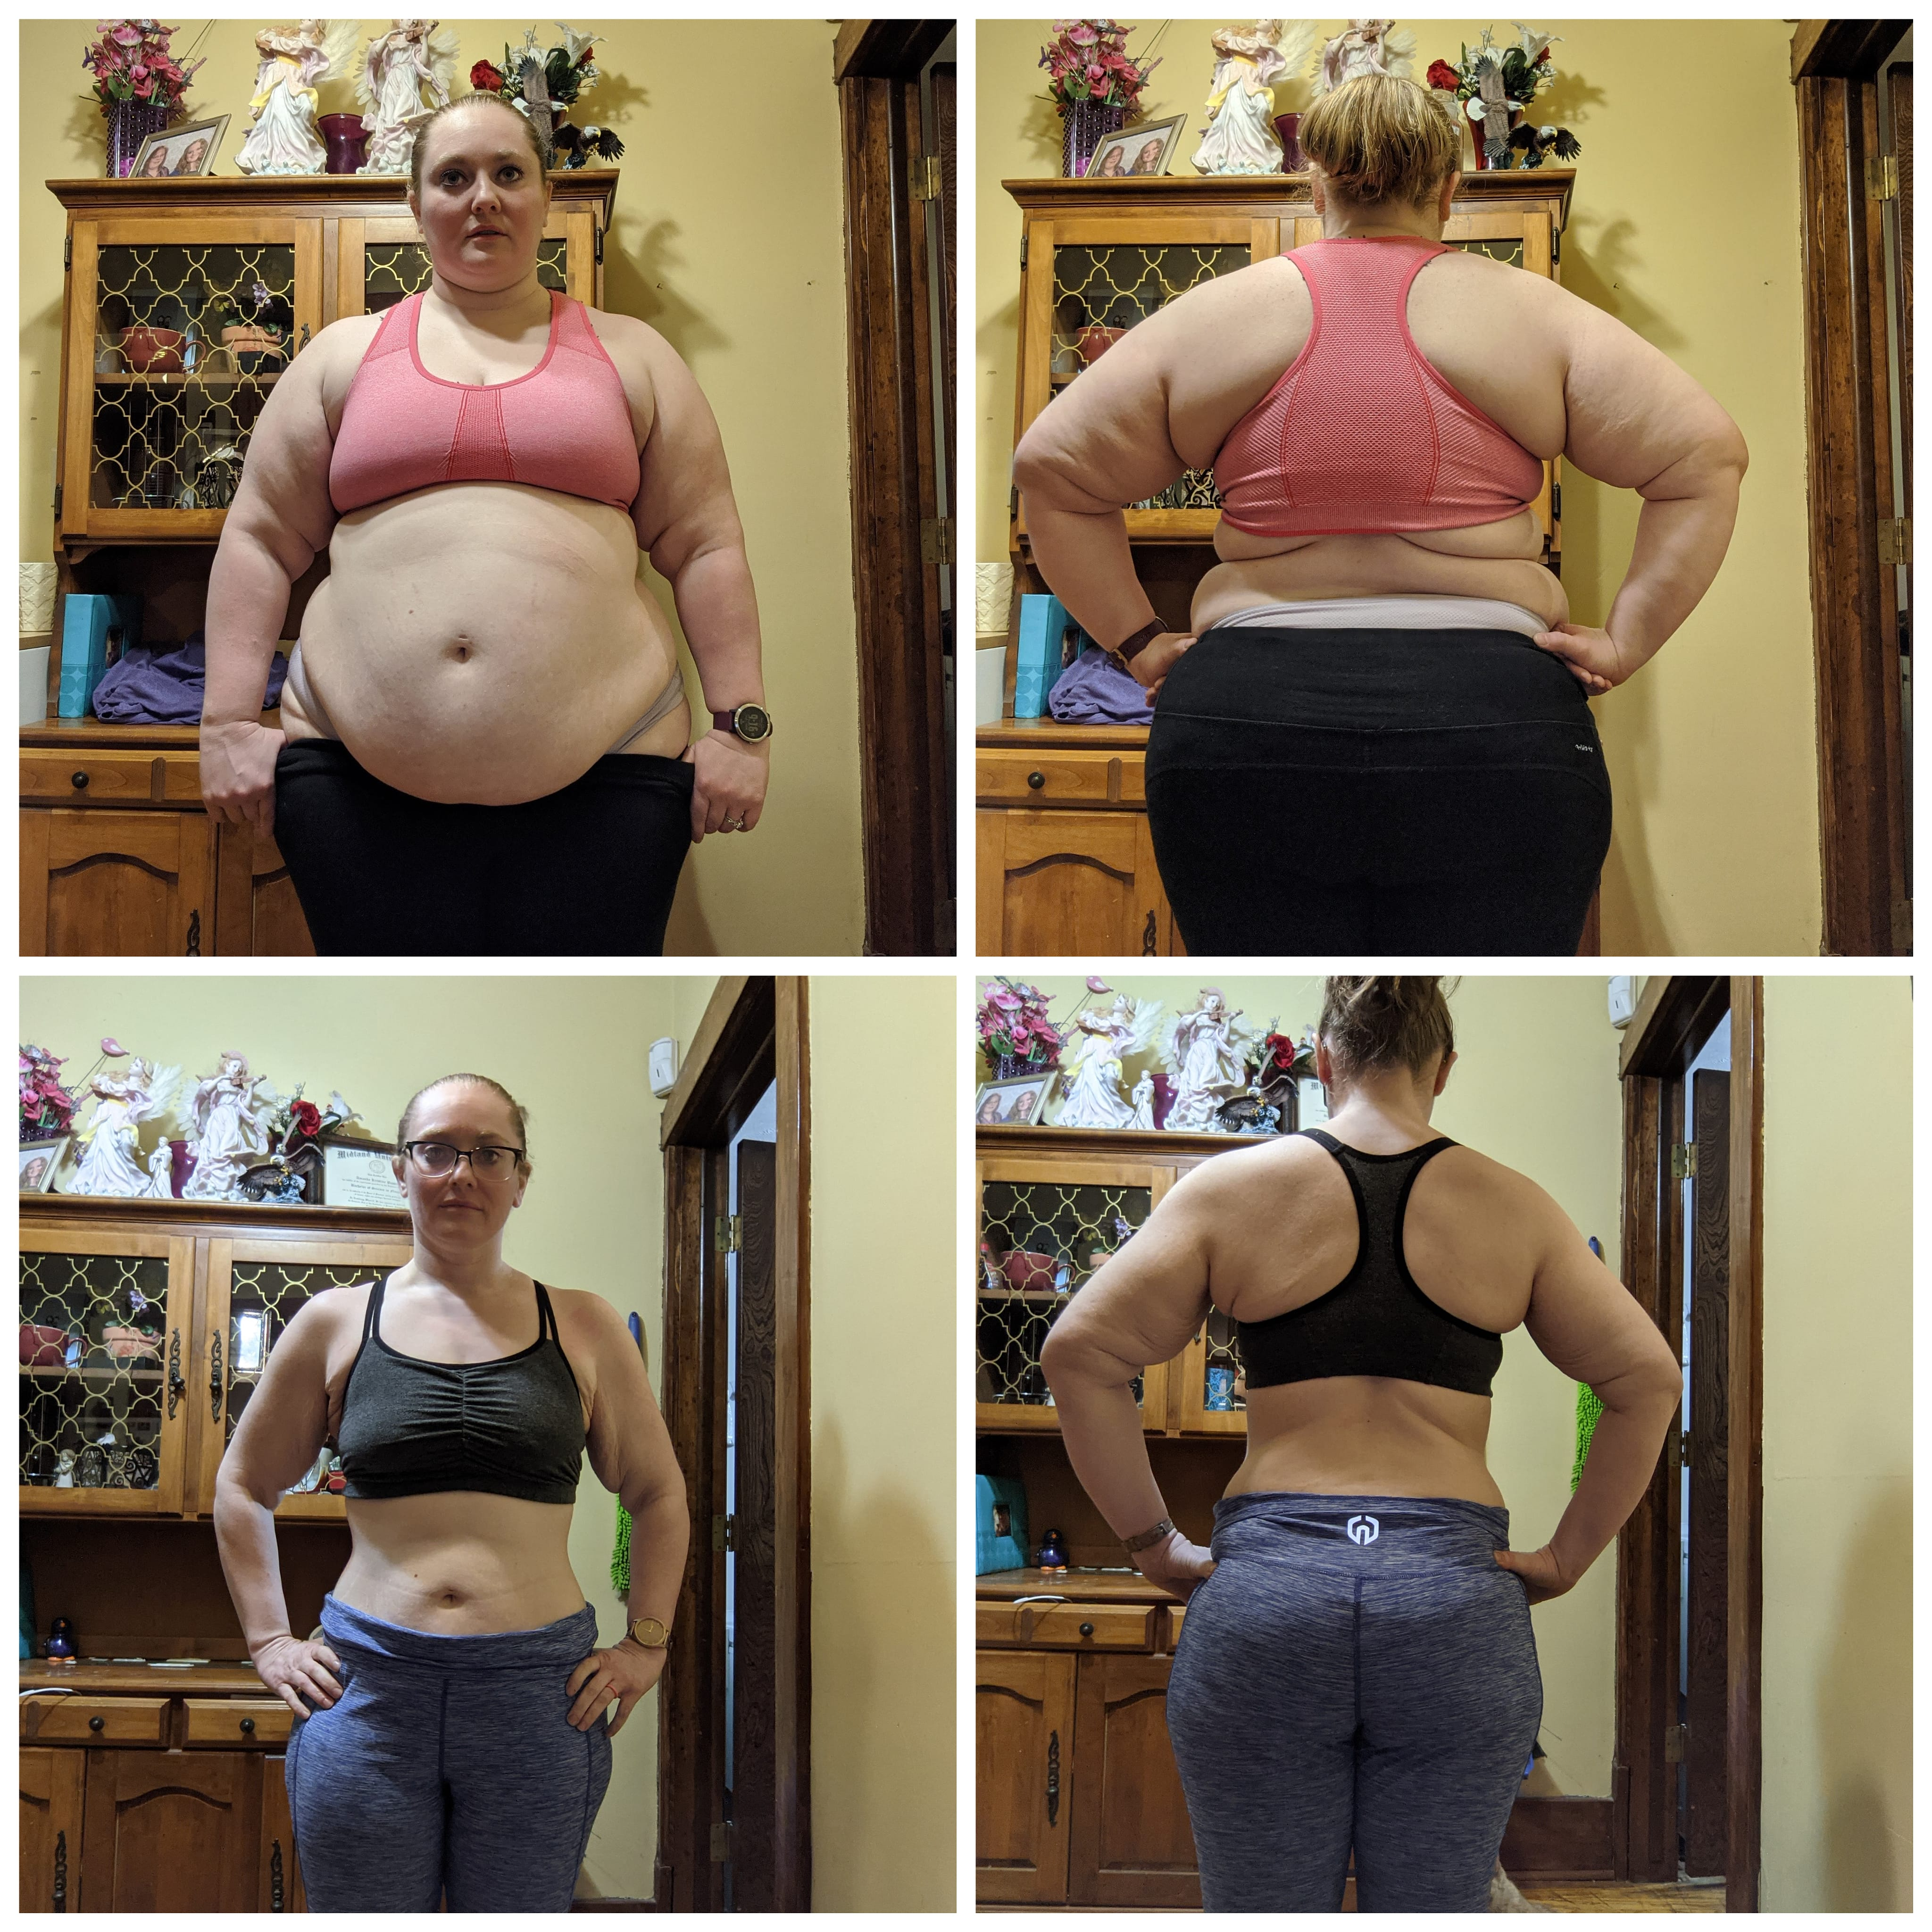 5 feet 4 Female 113 lbs Fat Loss Before and After 284 lbs to 171 lbs